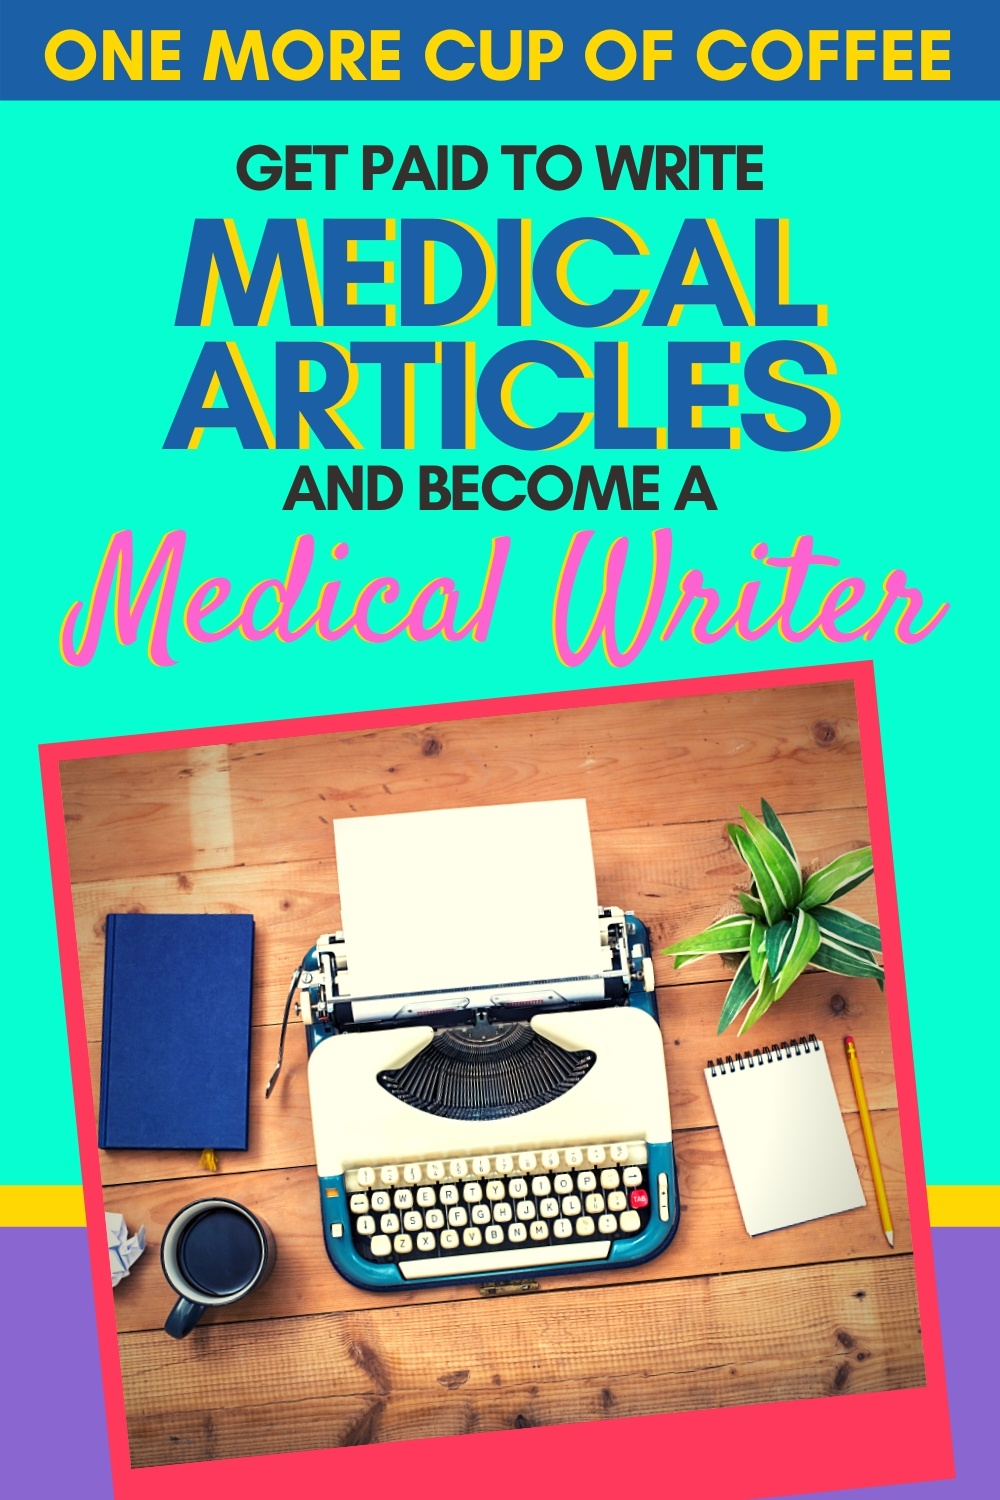 typewriter, cup of coffee and a notebook to represent a writer becoming a medical writer